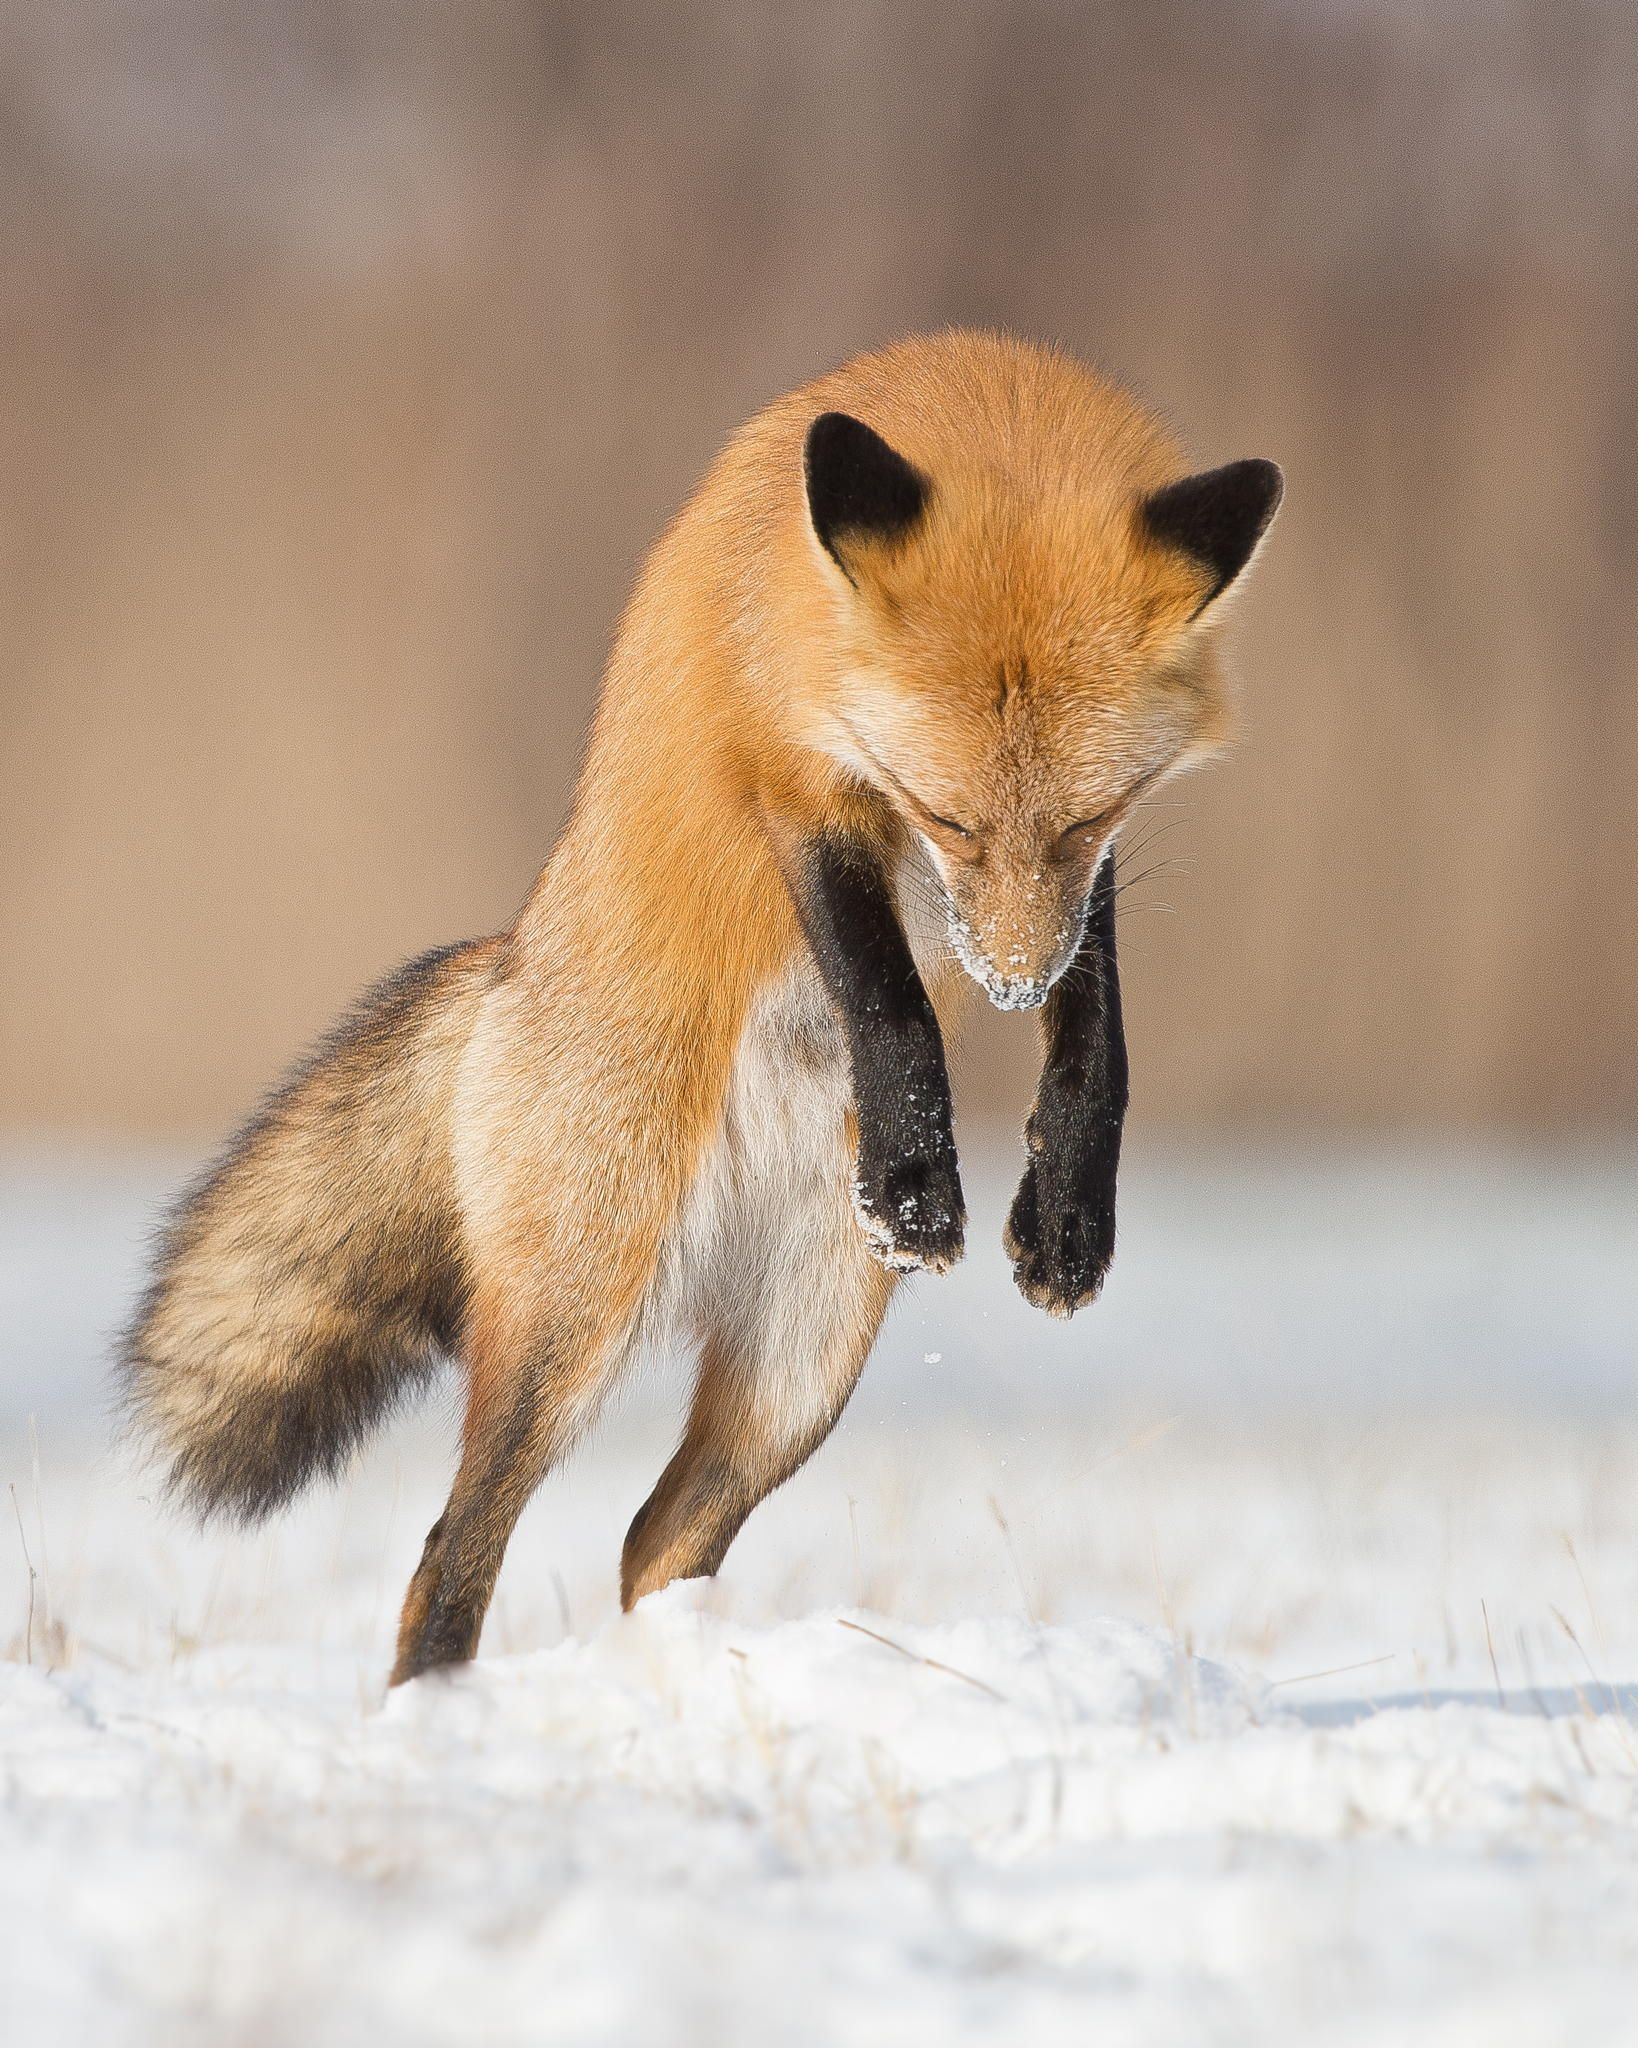 Jumping by Maxime Riendeau on 500px